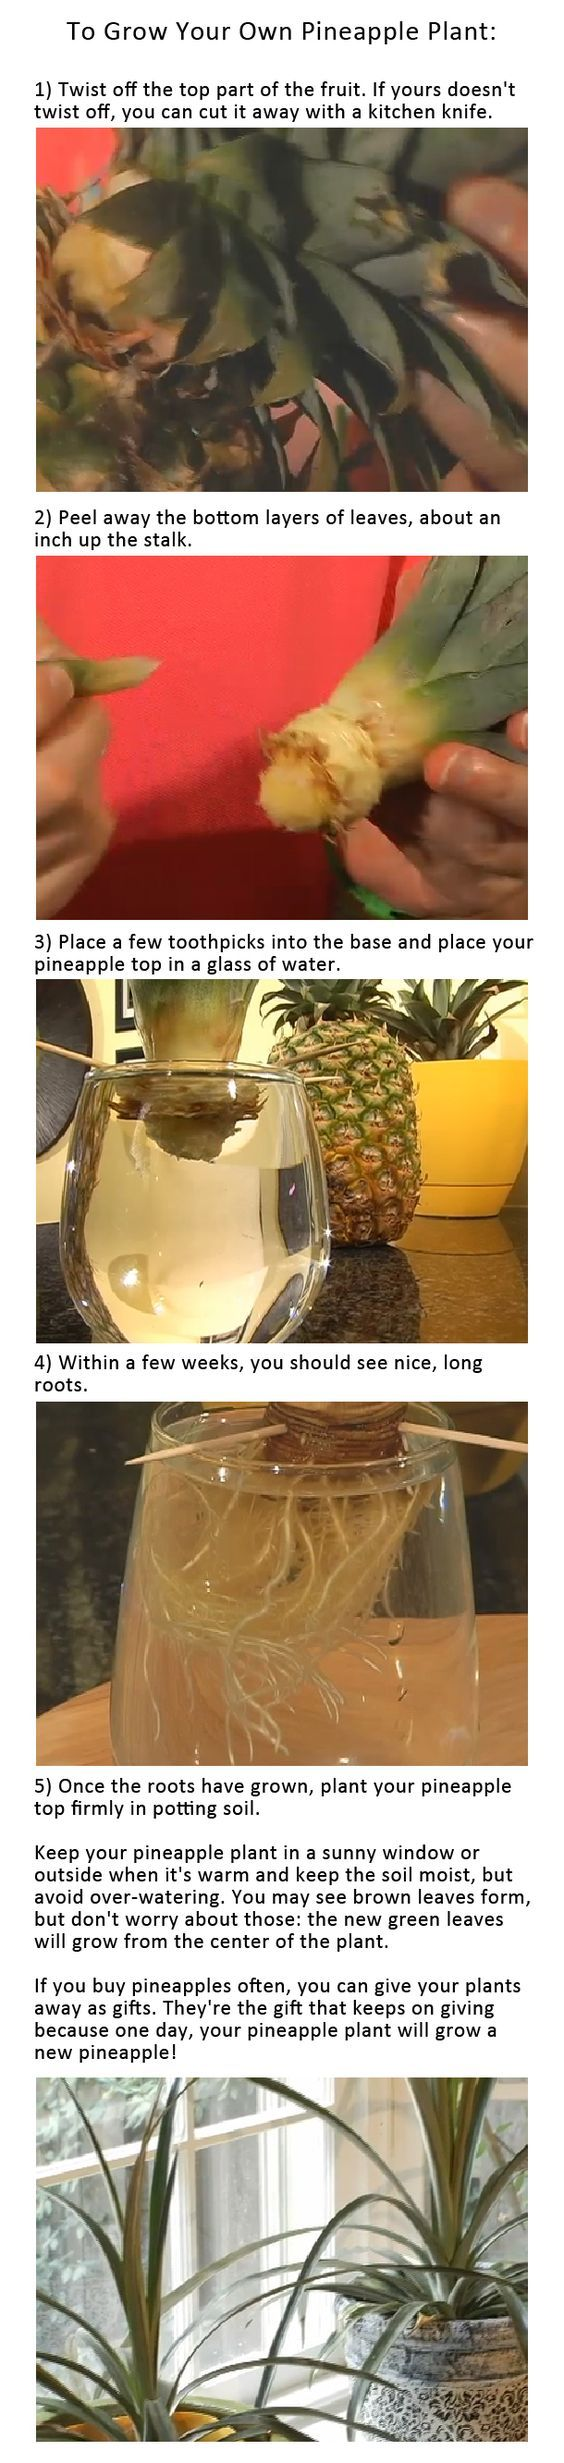 This shows how to grow your own pineapple plant from the top of one you already have. I would love to see if this works.